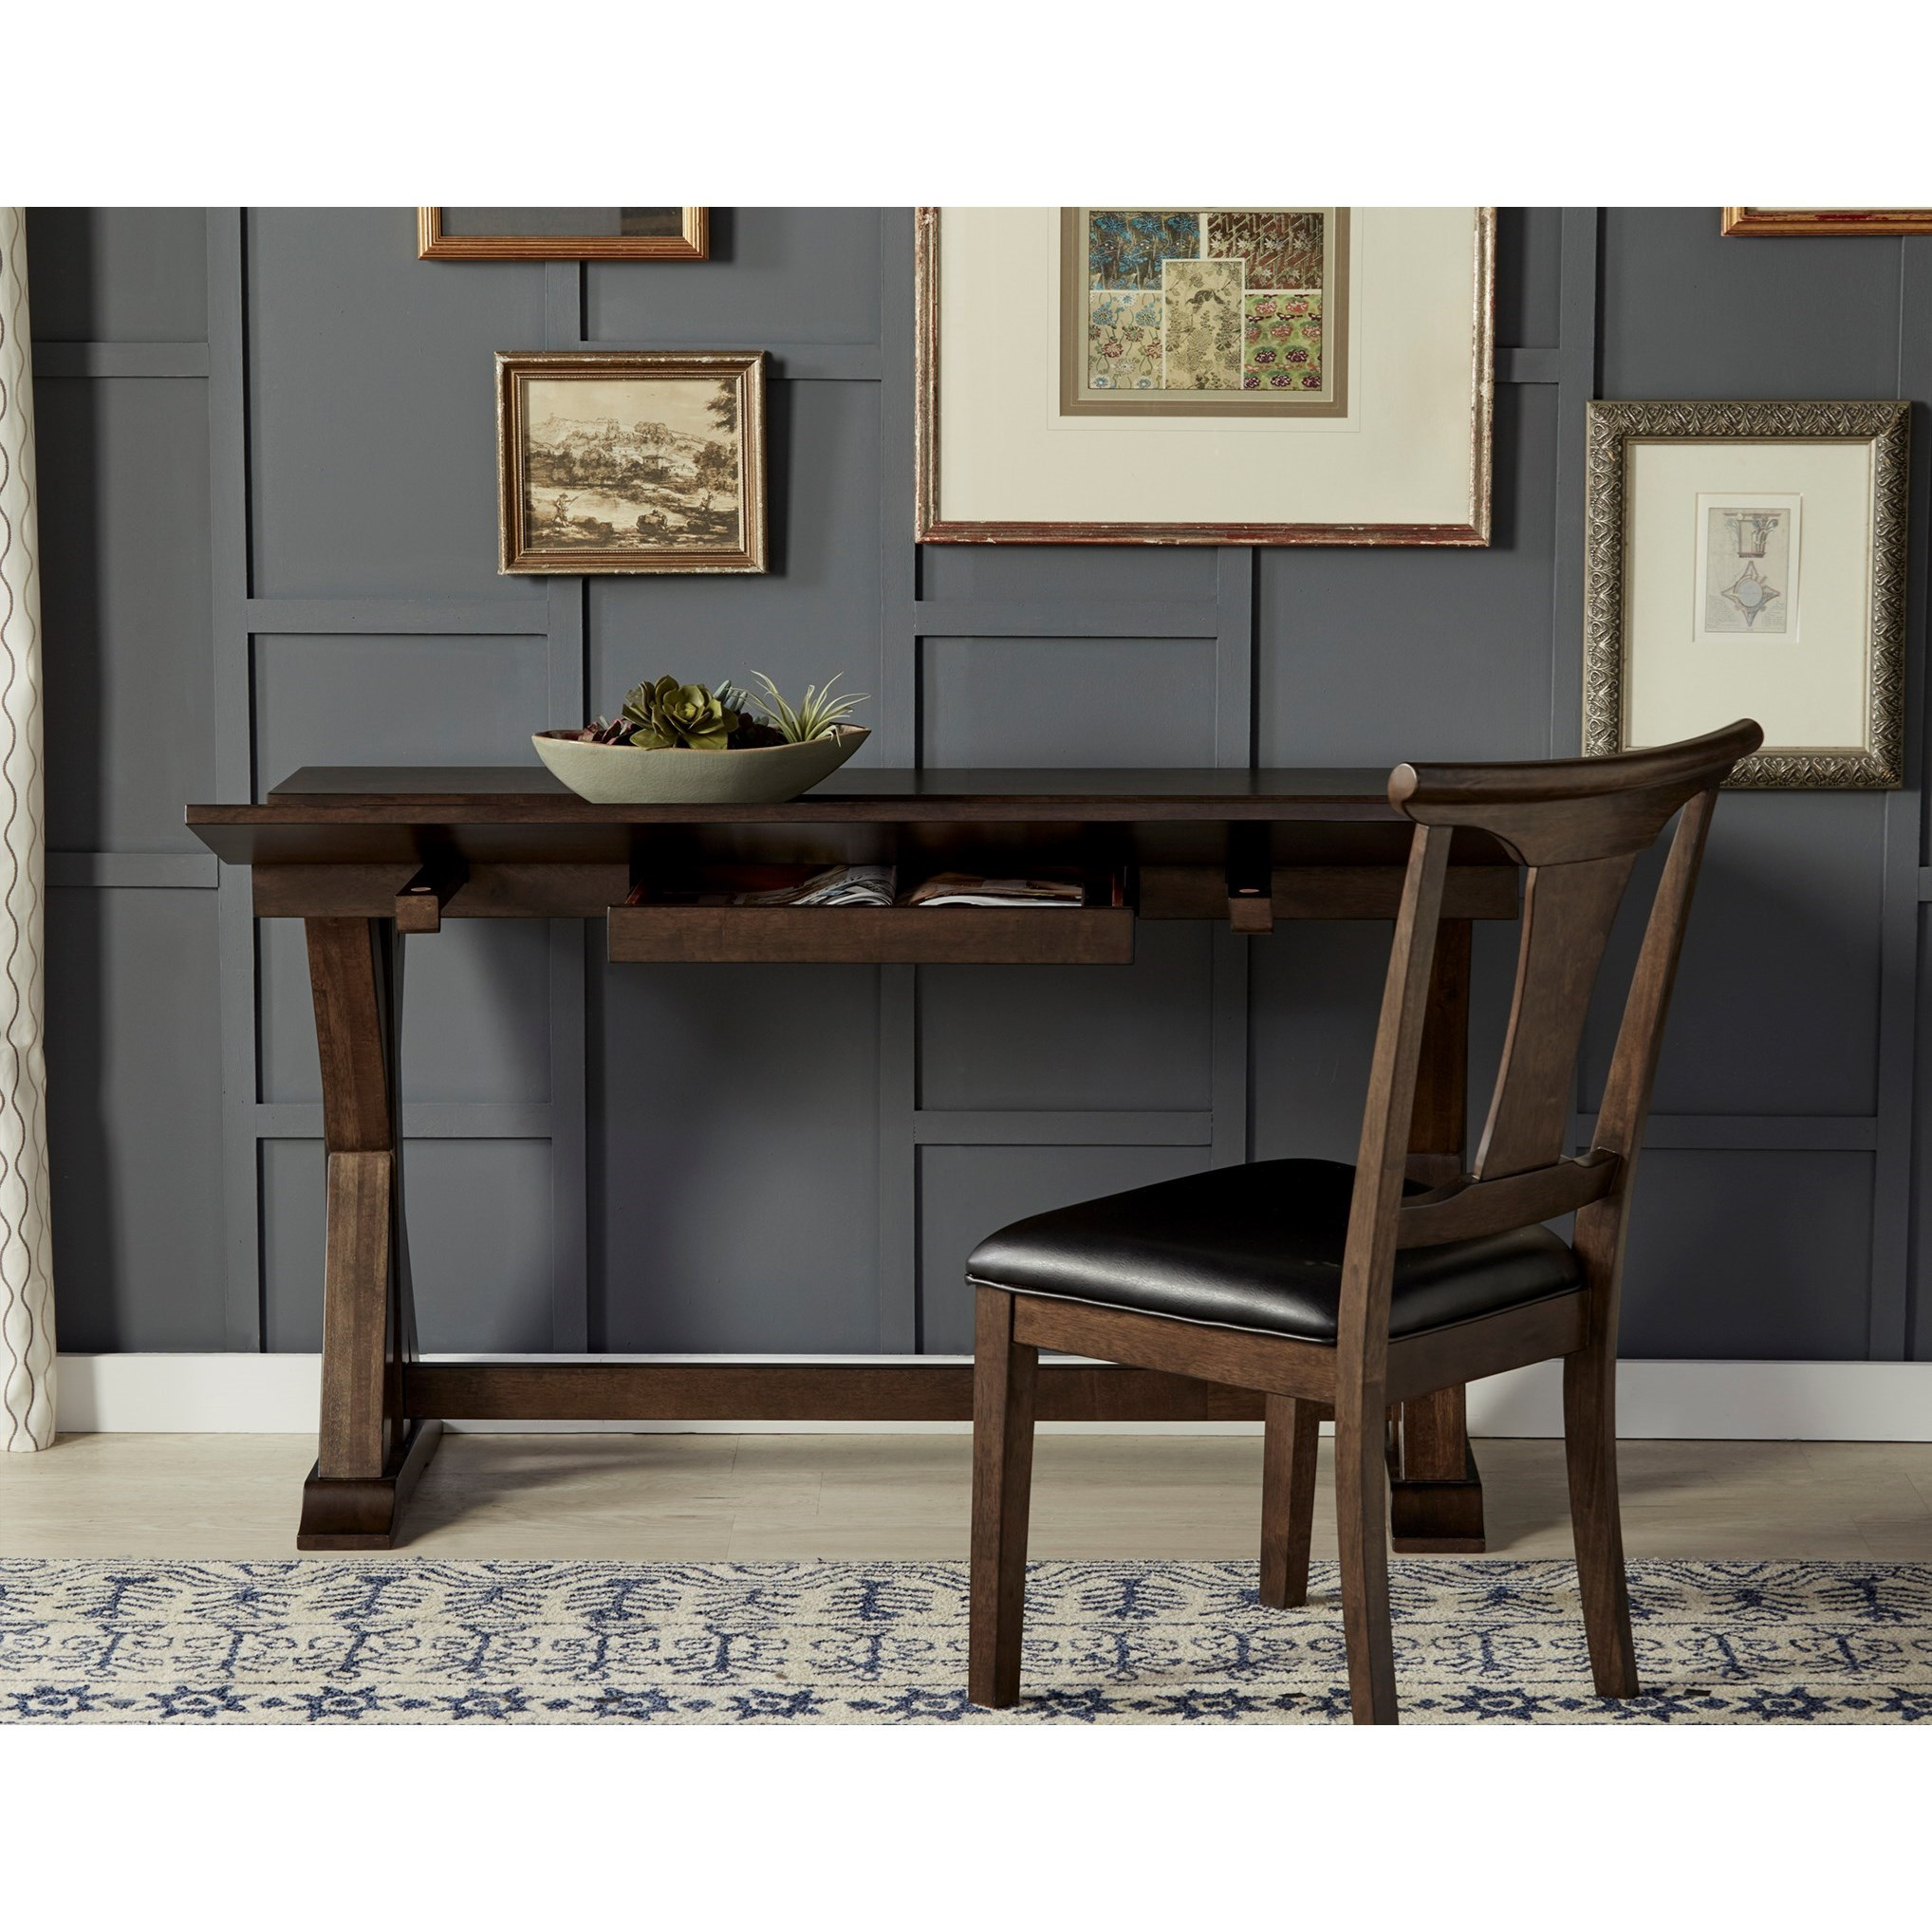 flip top dining table with storage by aamerica wolf and gardiner wolf furniture. Black Bedroom Furniture Sets. Home Design Ideas